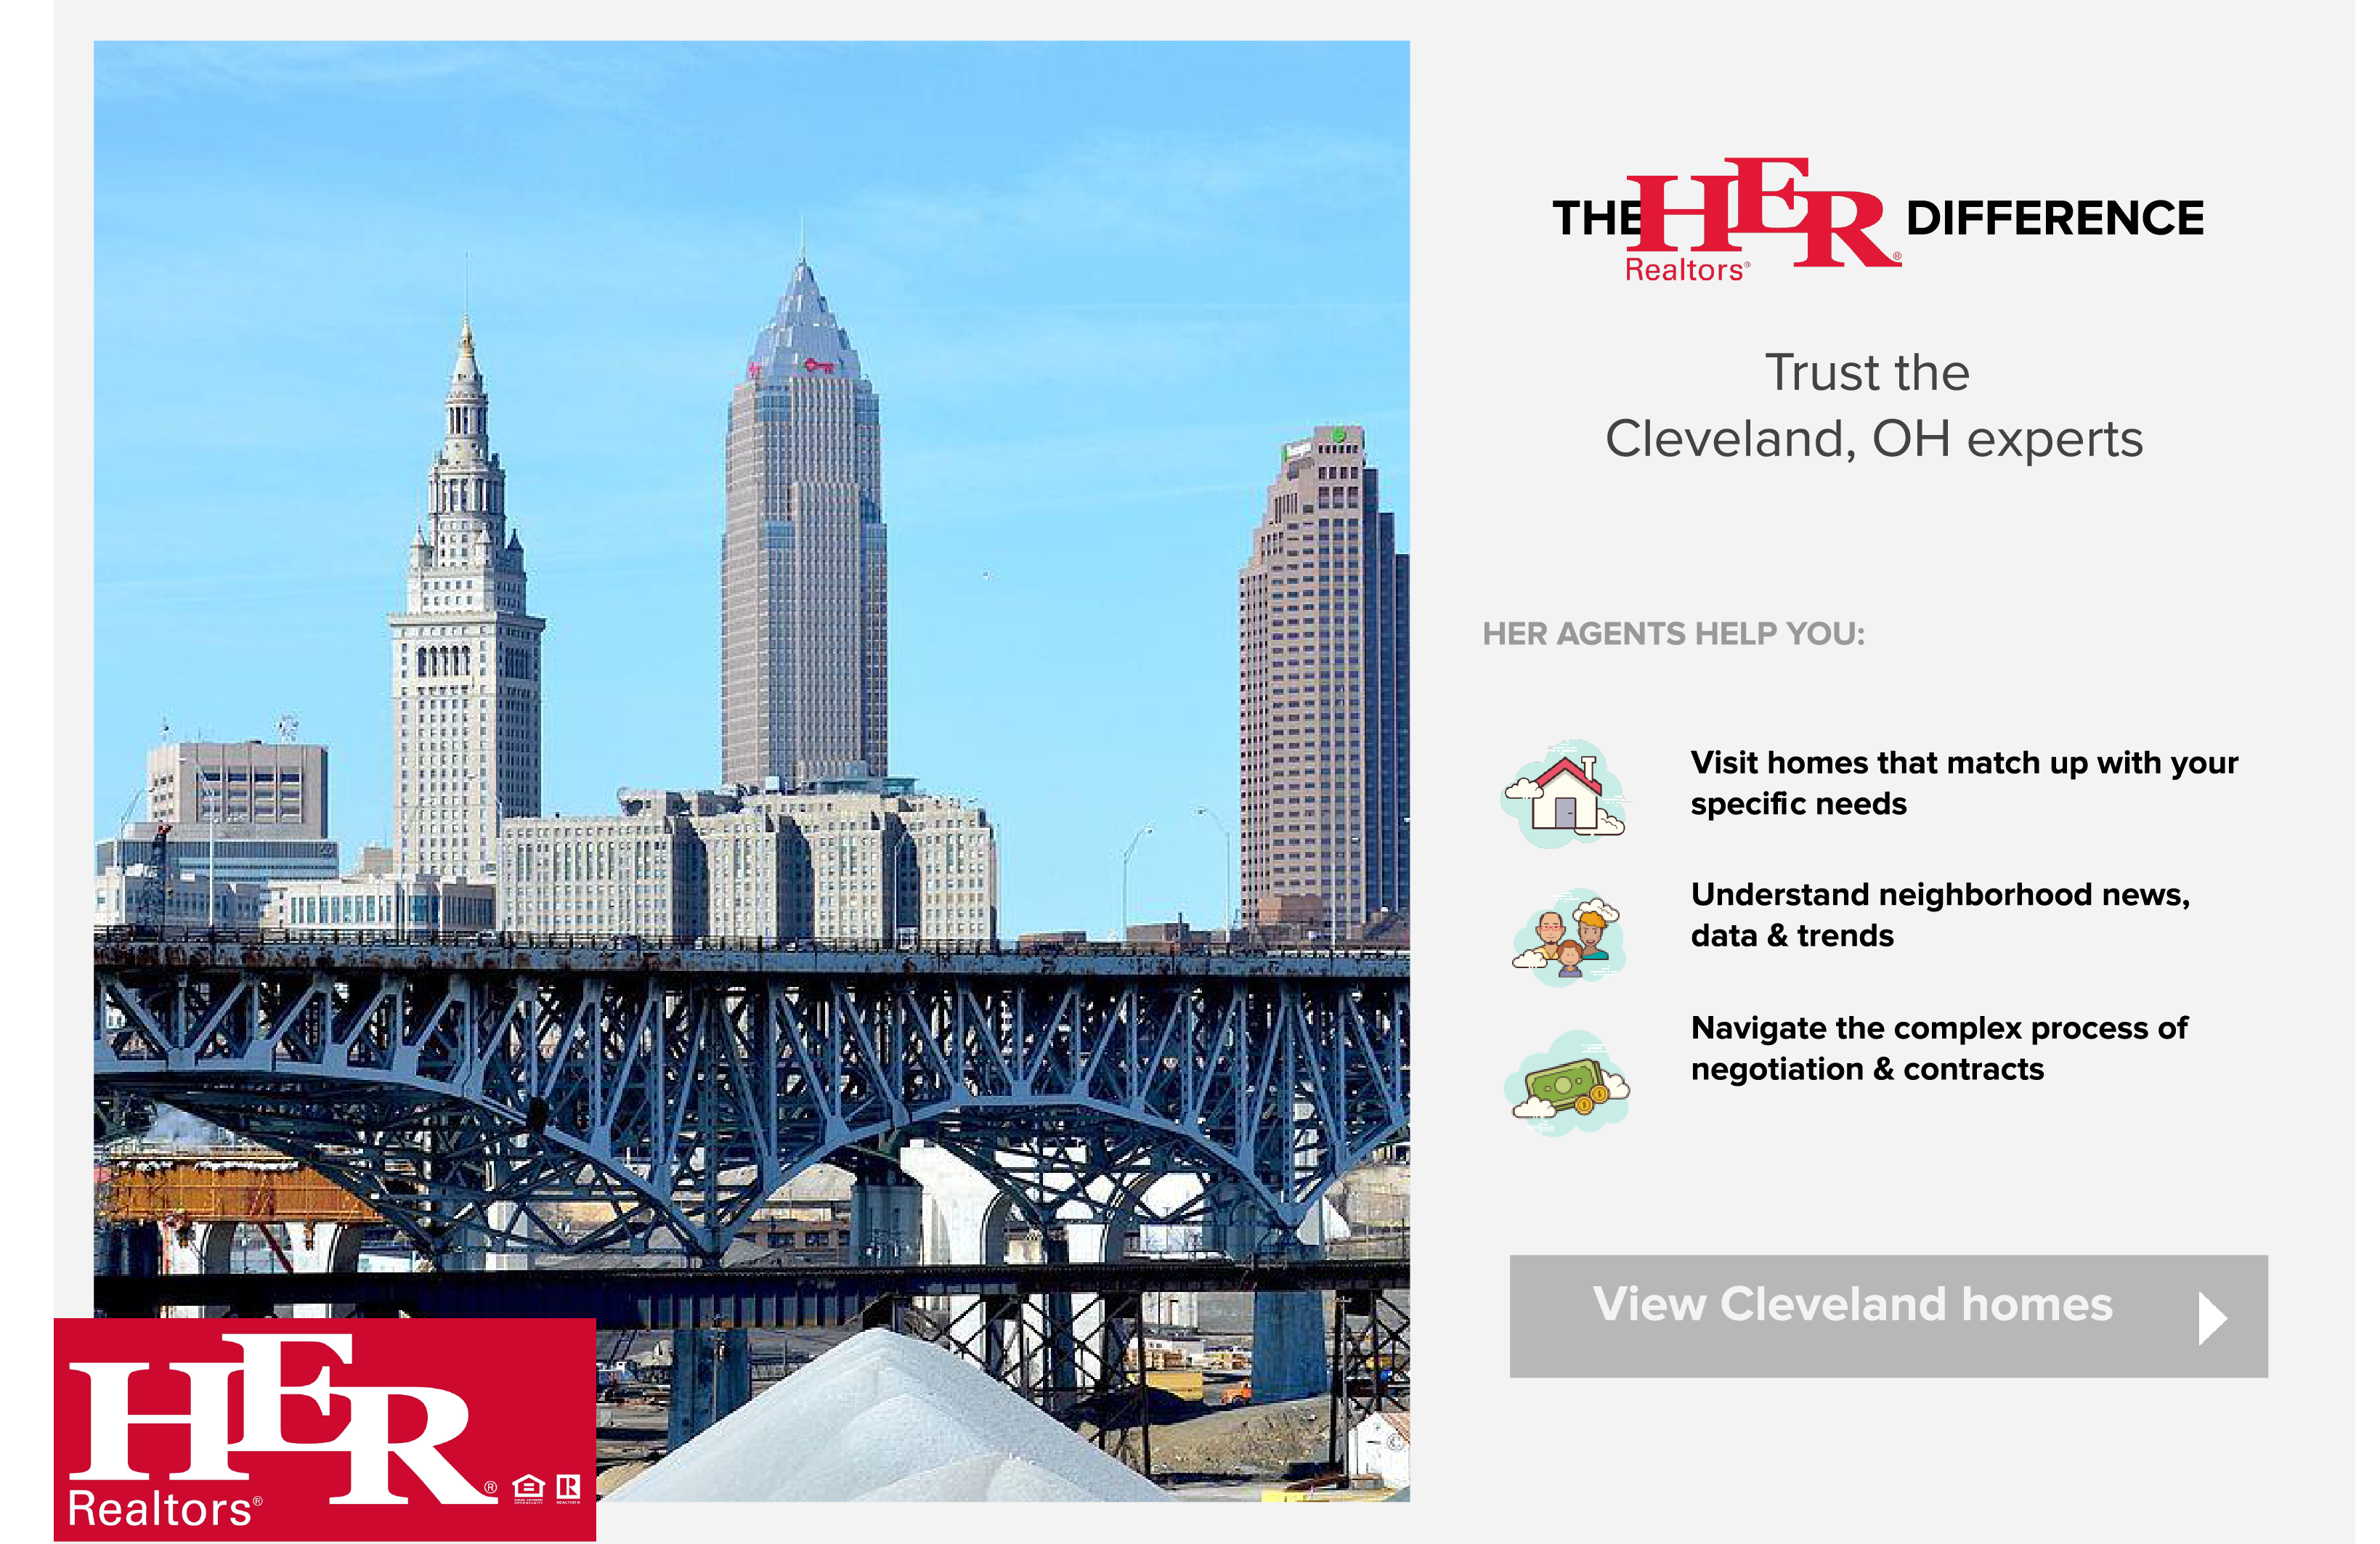 CLEVELAND HOMES FOR SALE